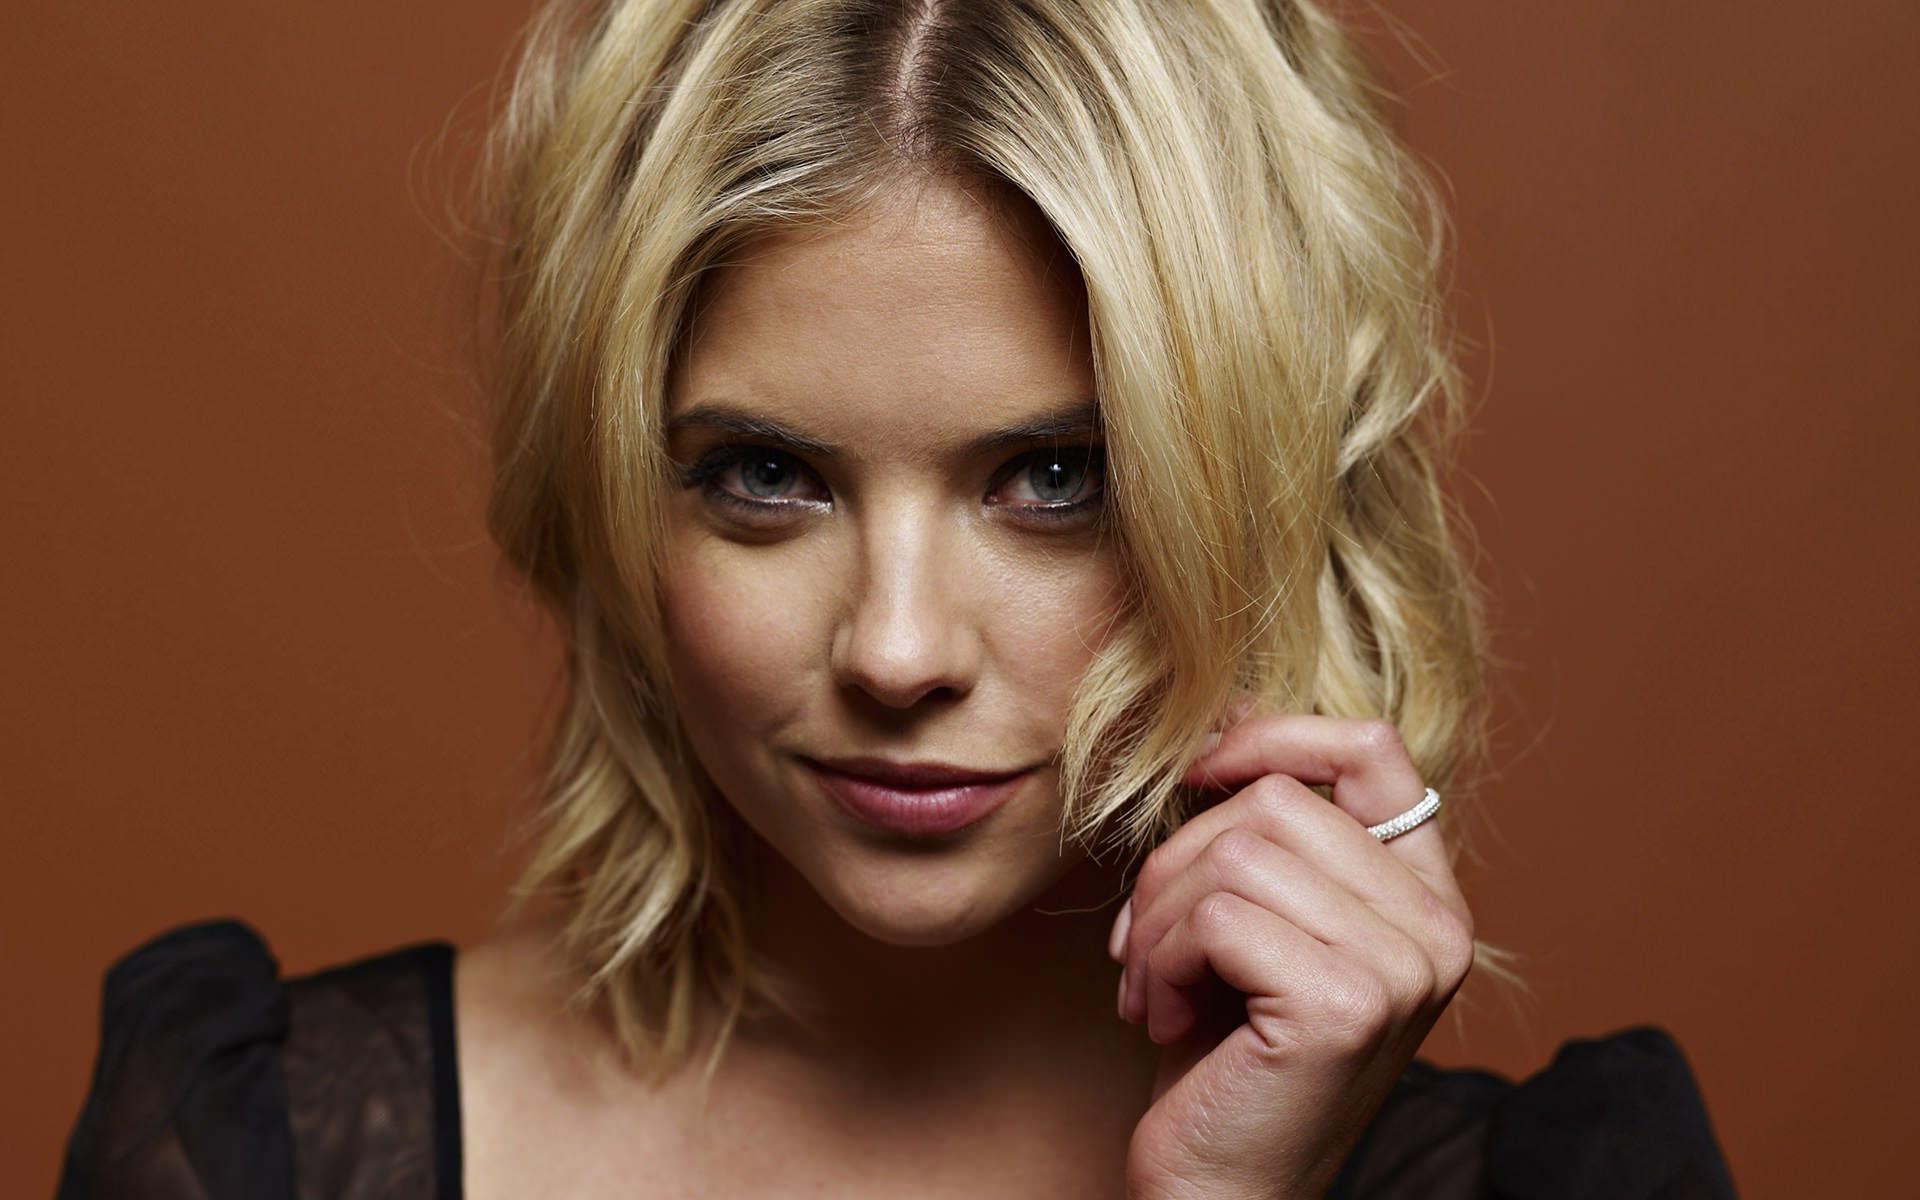 american-actress-ashley-benson-playing-with-hair